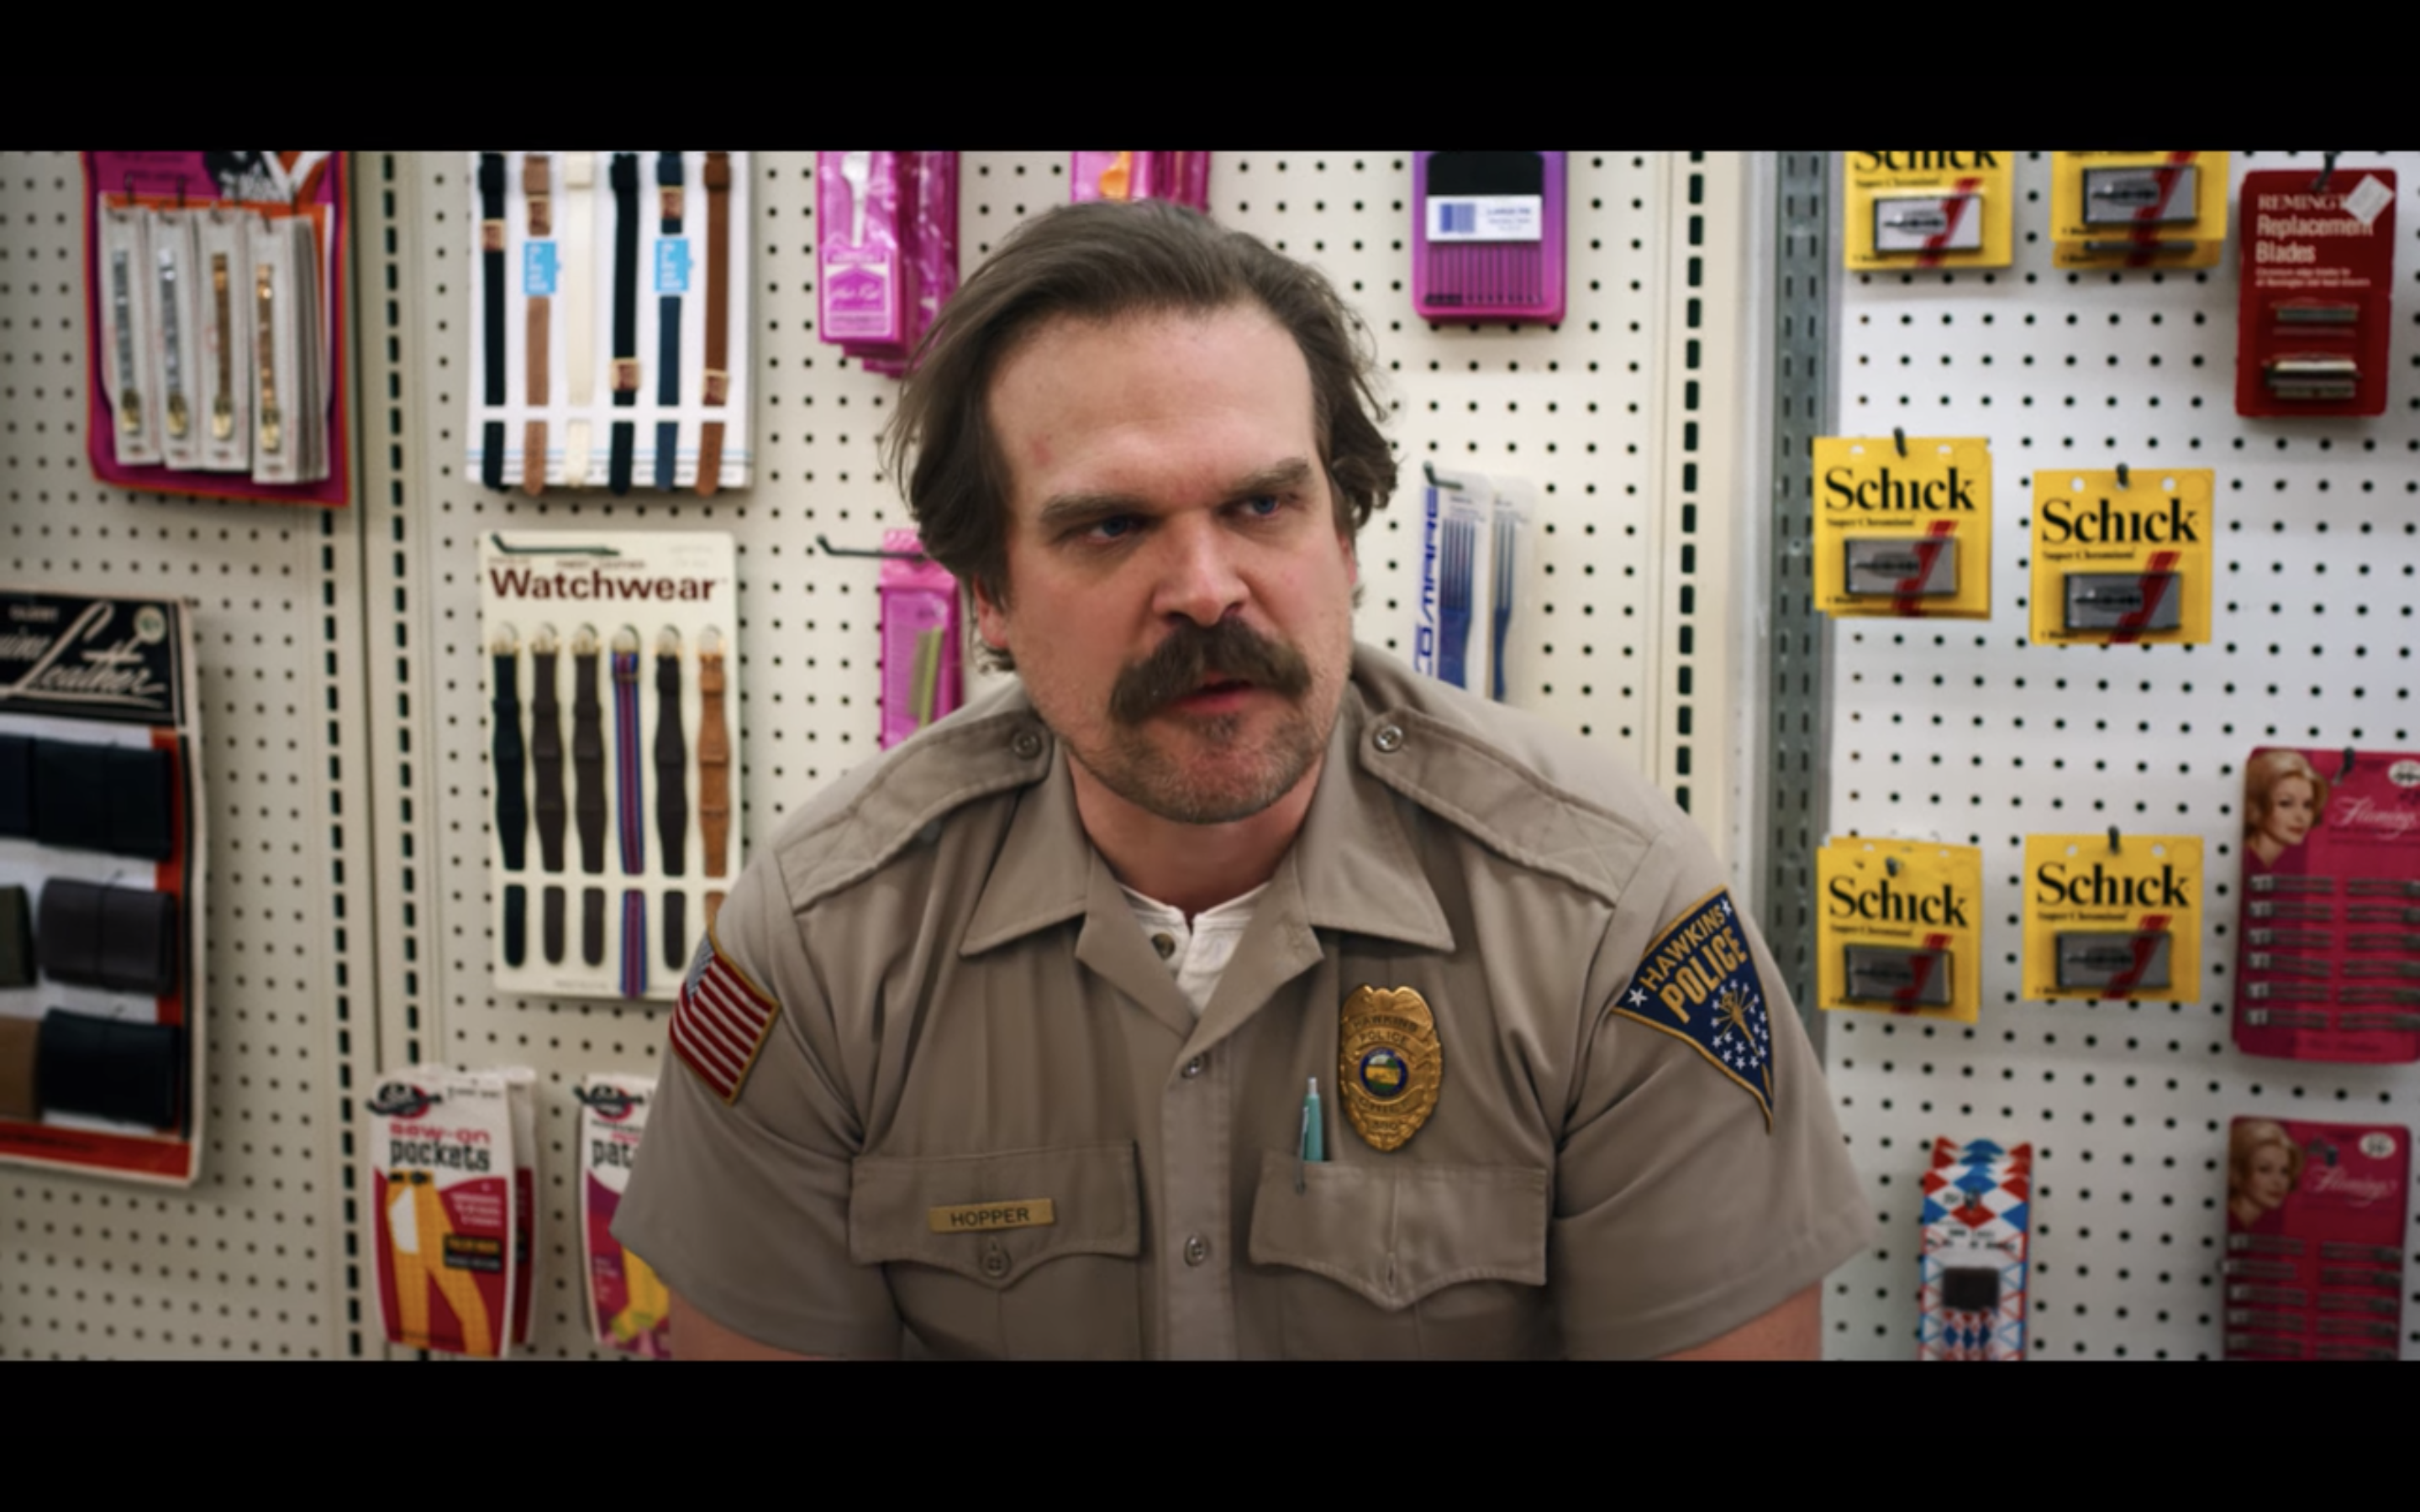 Schick logo in Stranger Things